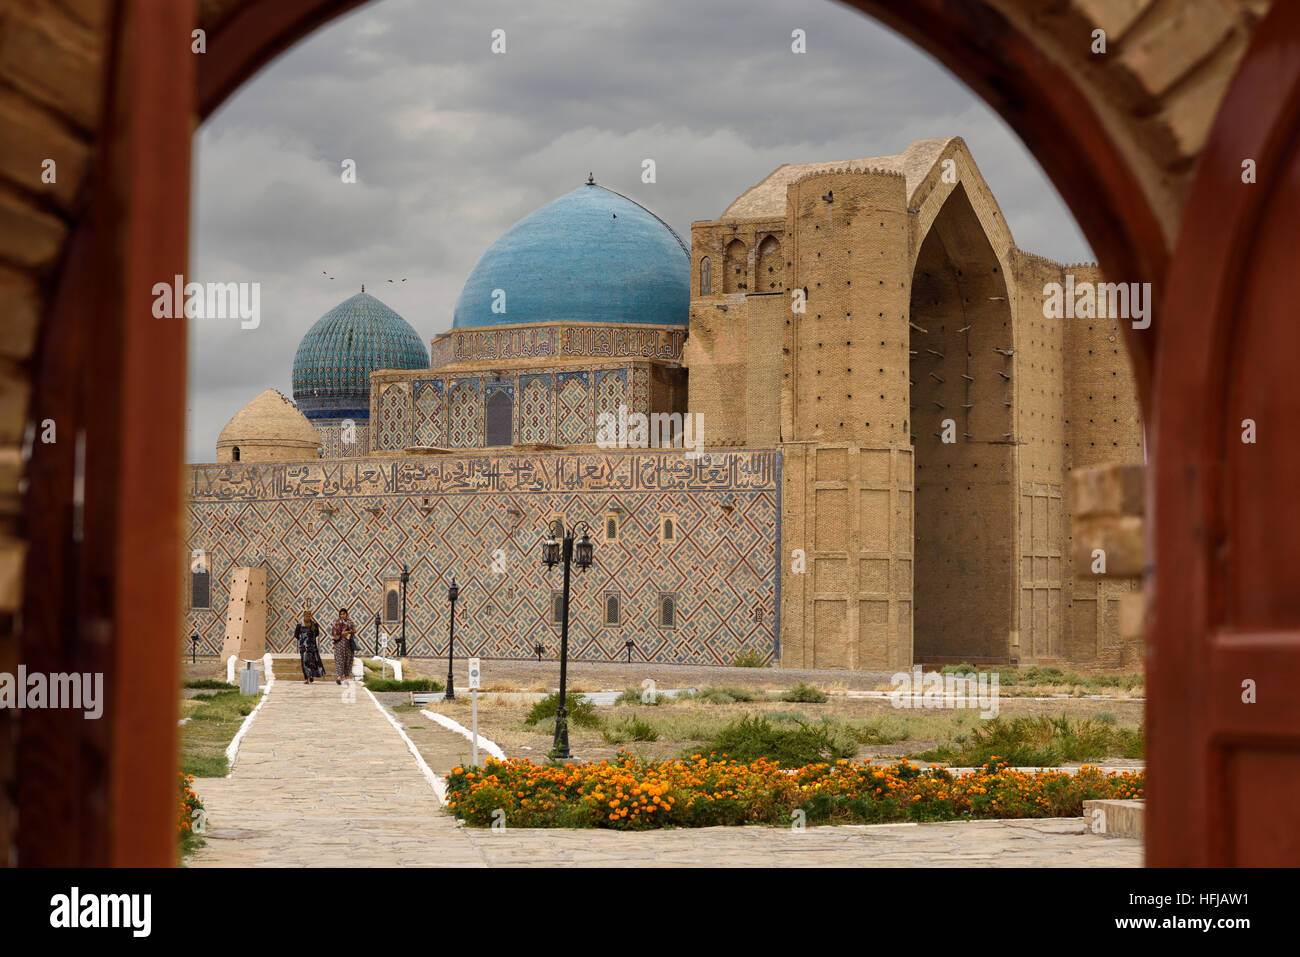 Khoja Ahmed Yasawi Mausoleum through the doors of the architectural museum Turkestan Kazakhstan - Stock Image